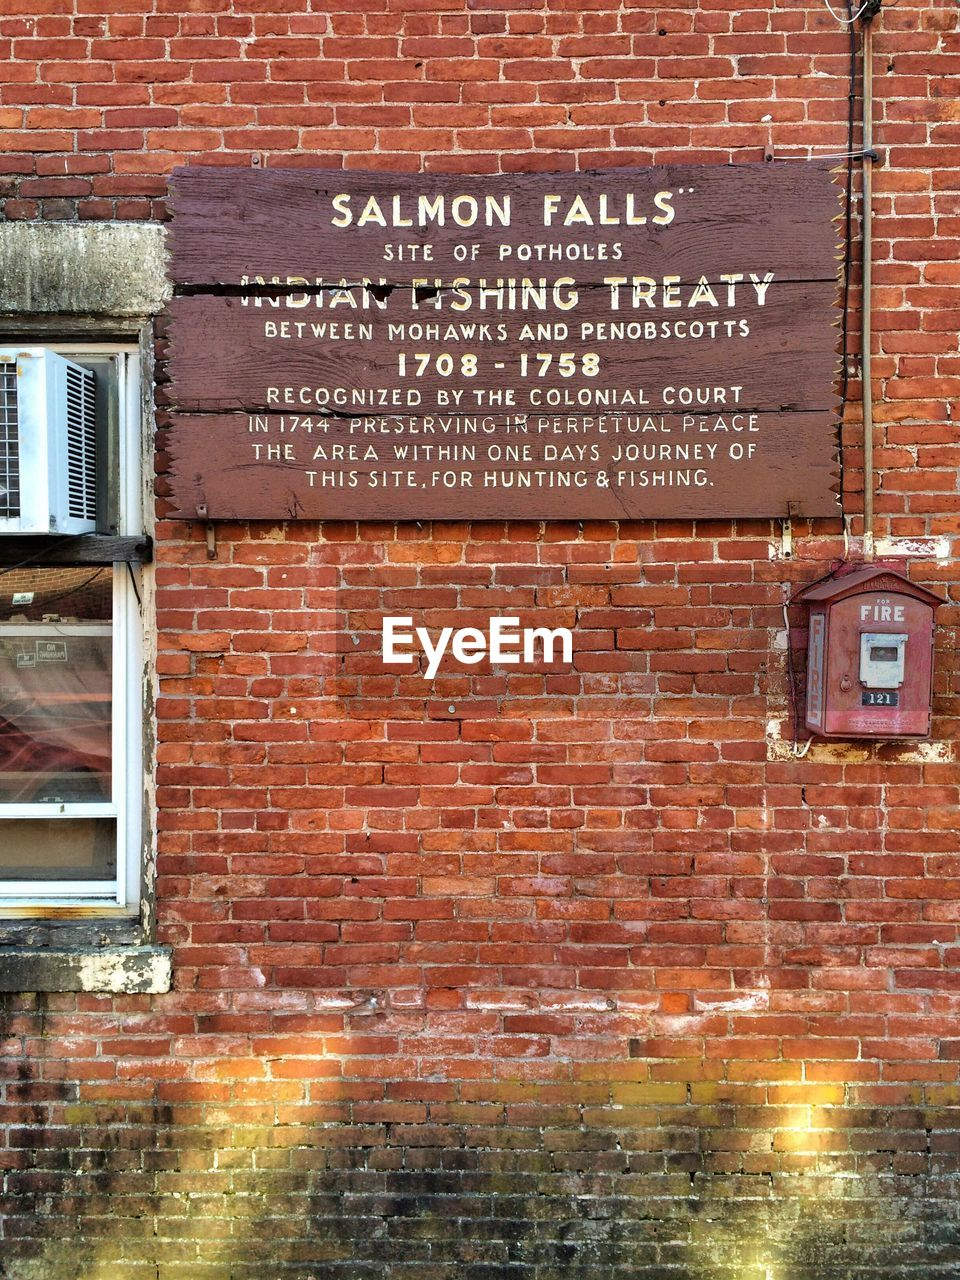 architecture, brick, built structure, brick wall, wall, text, communication, building exterior, western script, wall - building feature, no people, sign, building, information, day, window, outdoors, information sign, low angle view, red, message